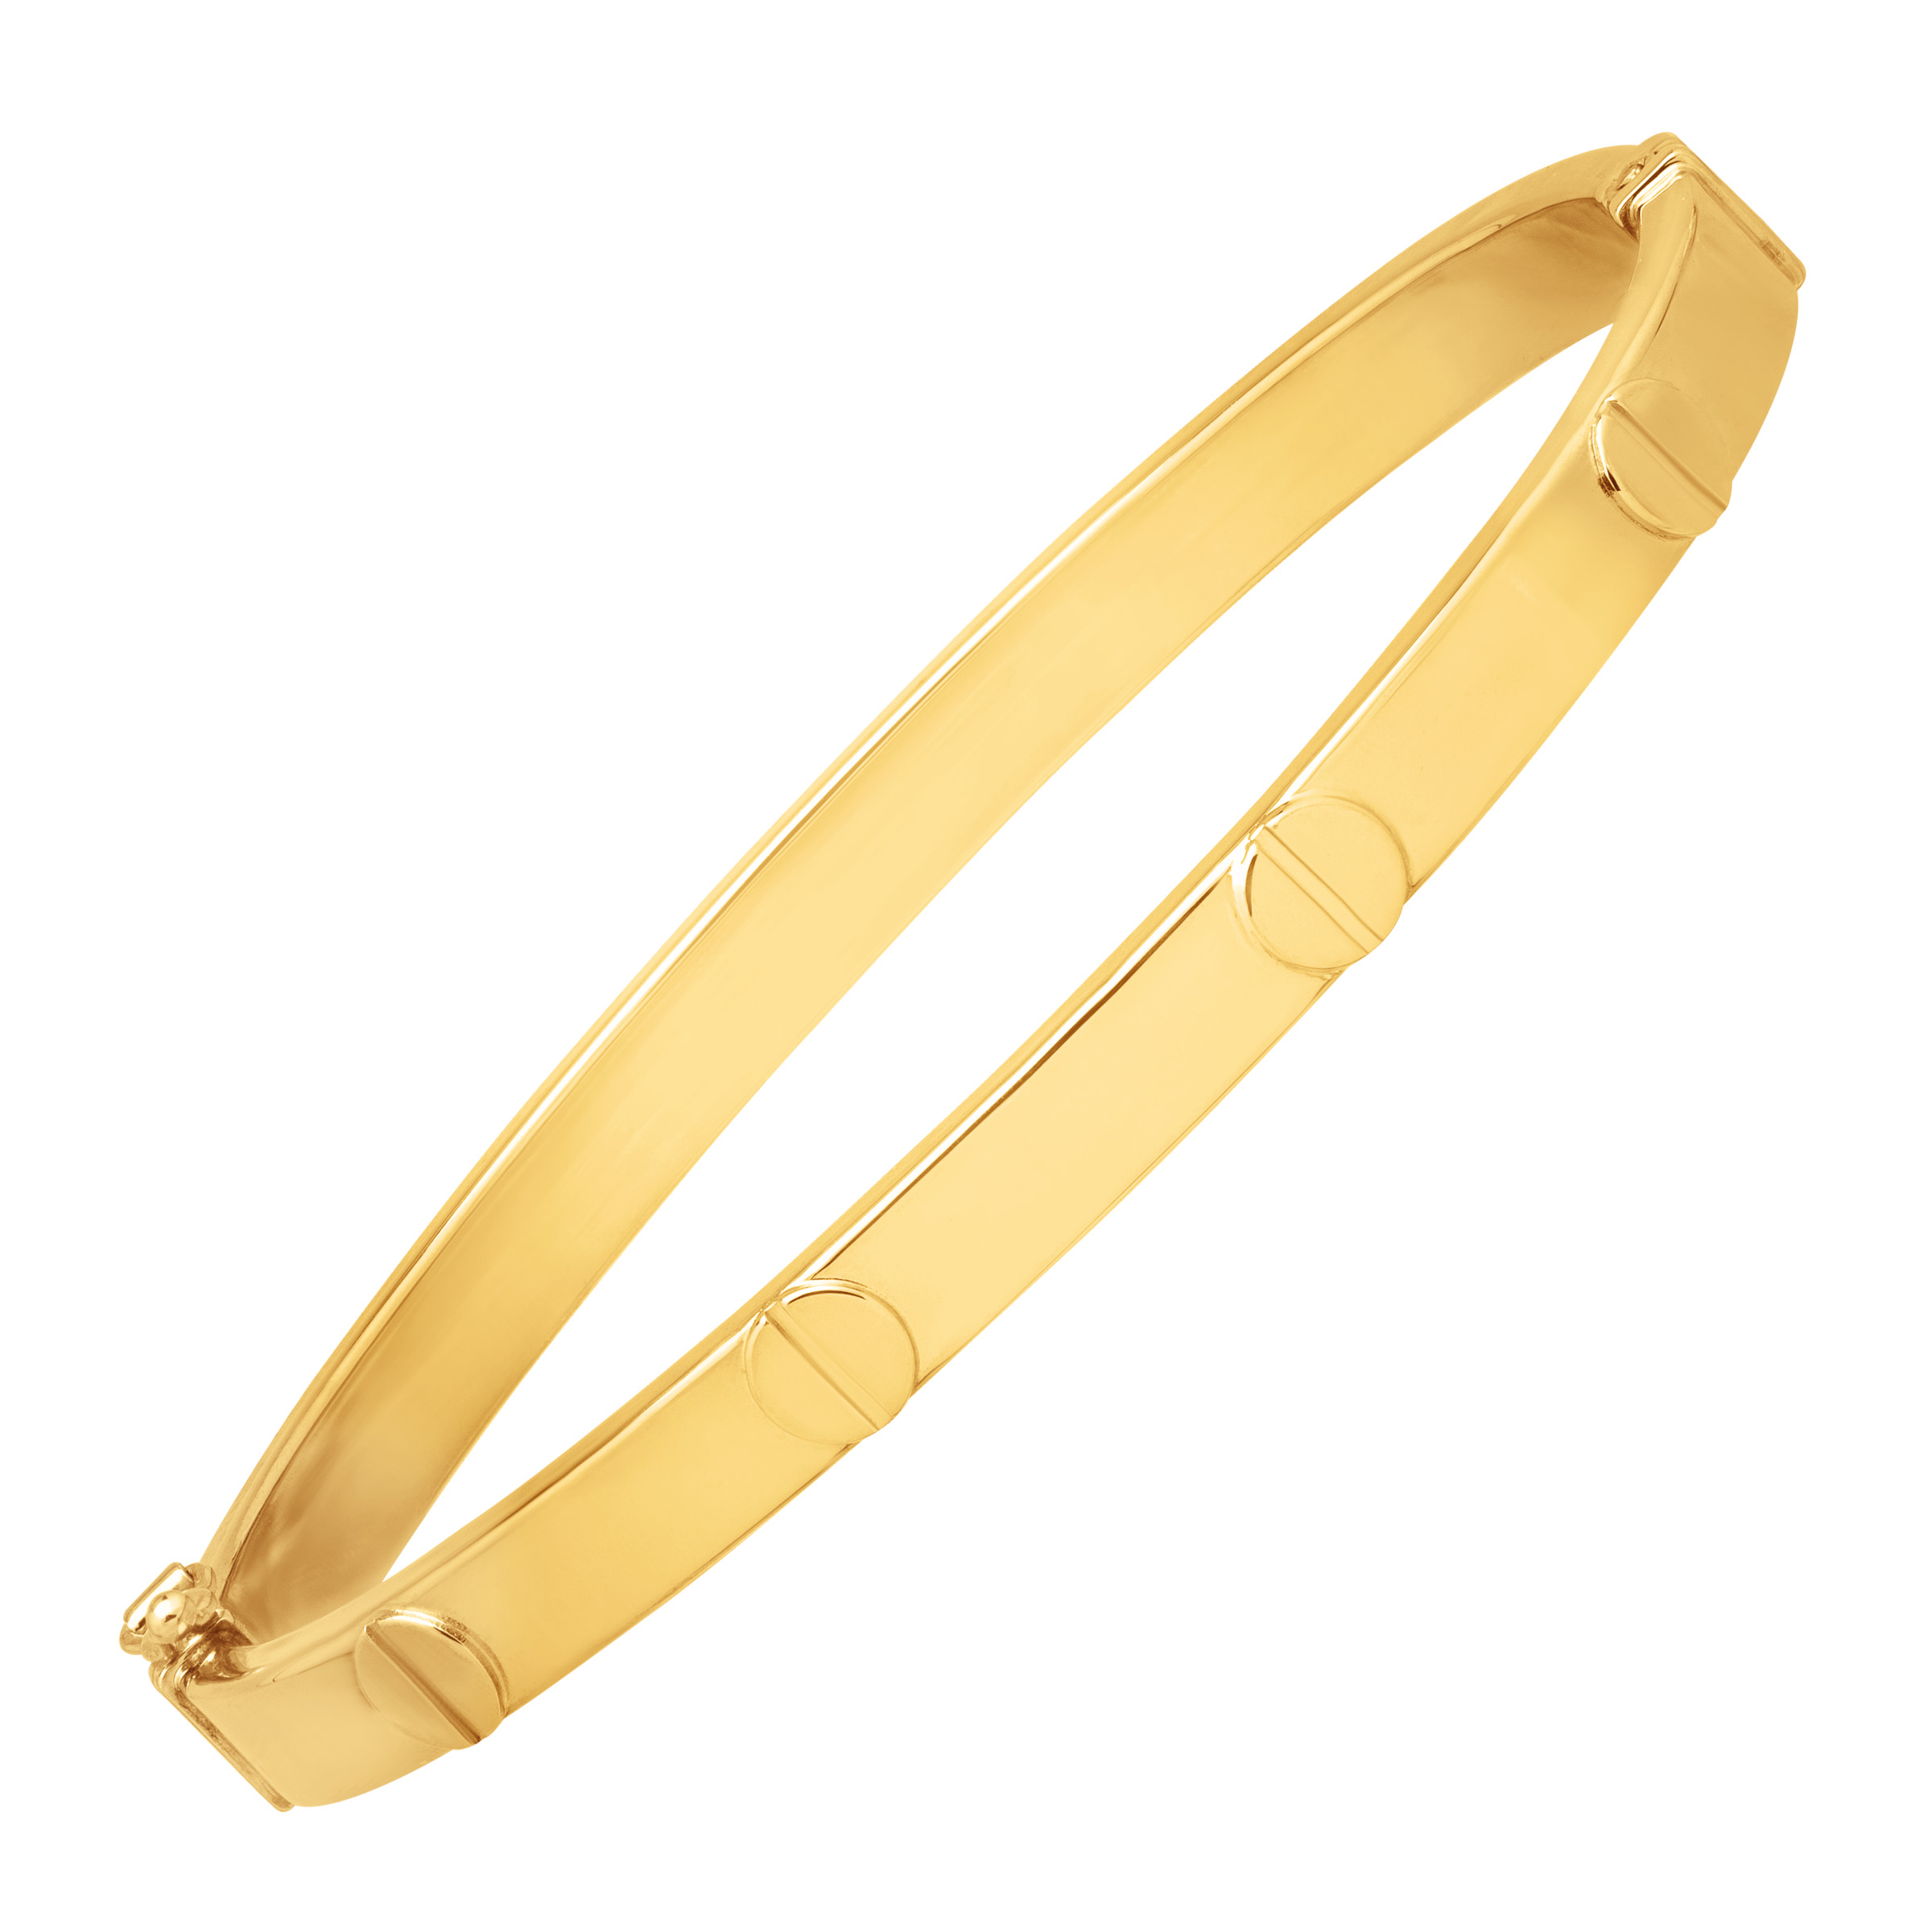 Just Gold Screw Motif Bangle Bracelet in 14kt Gold by Richline Group